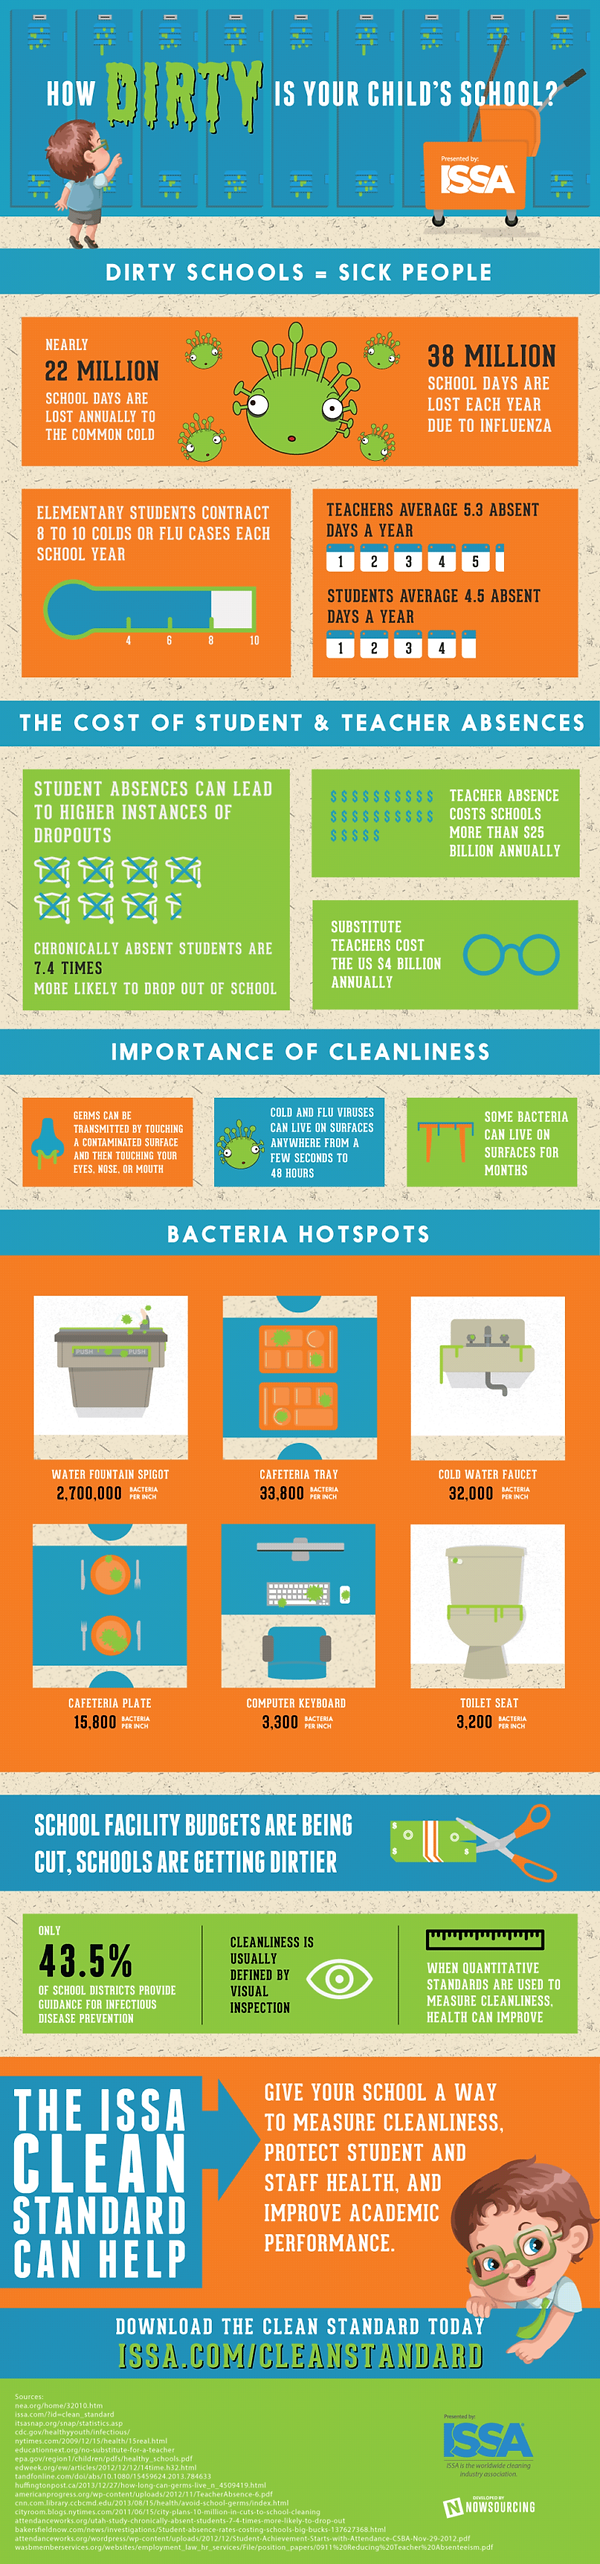 ISSA-How-Clean-infographic-768x3282.png